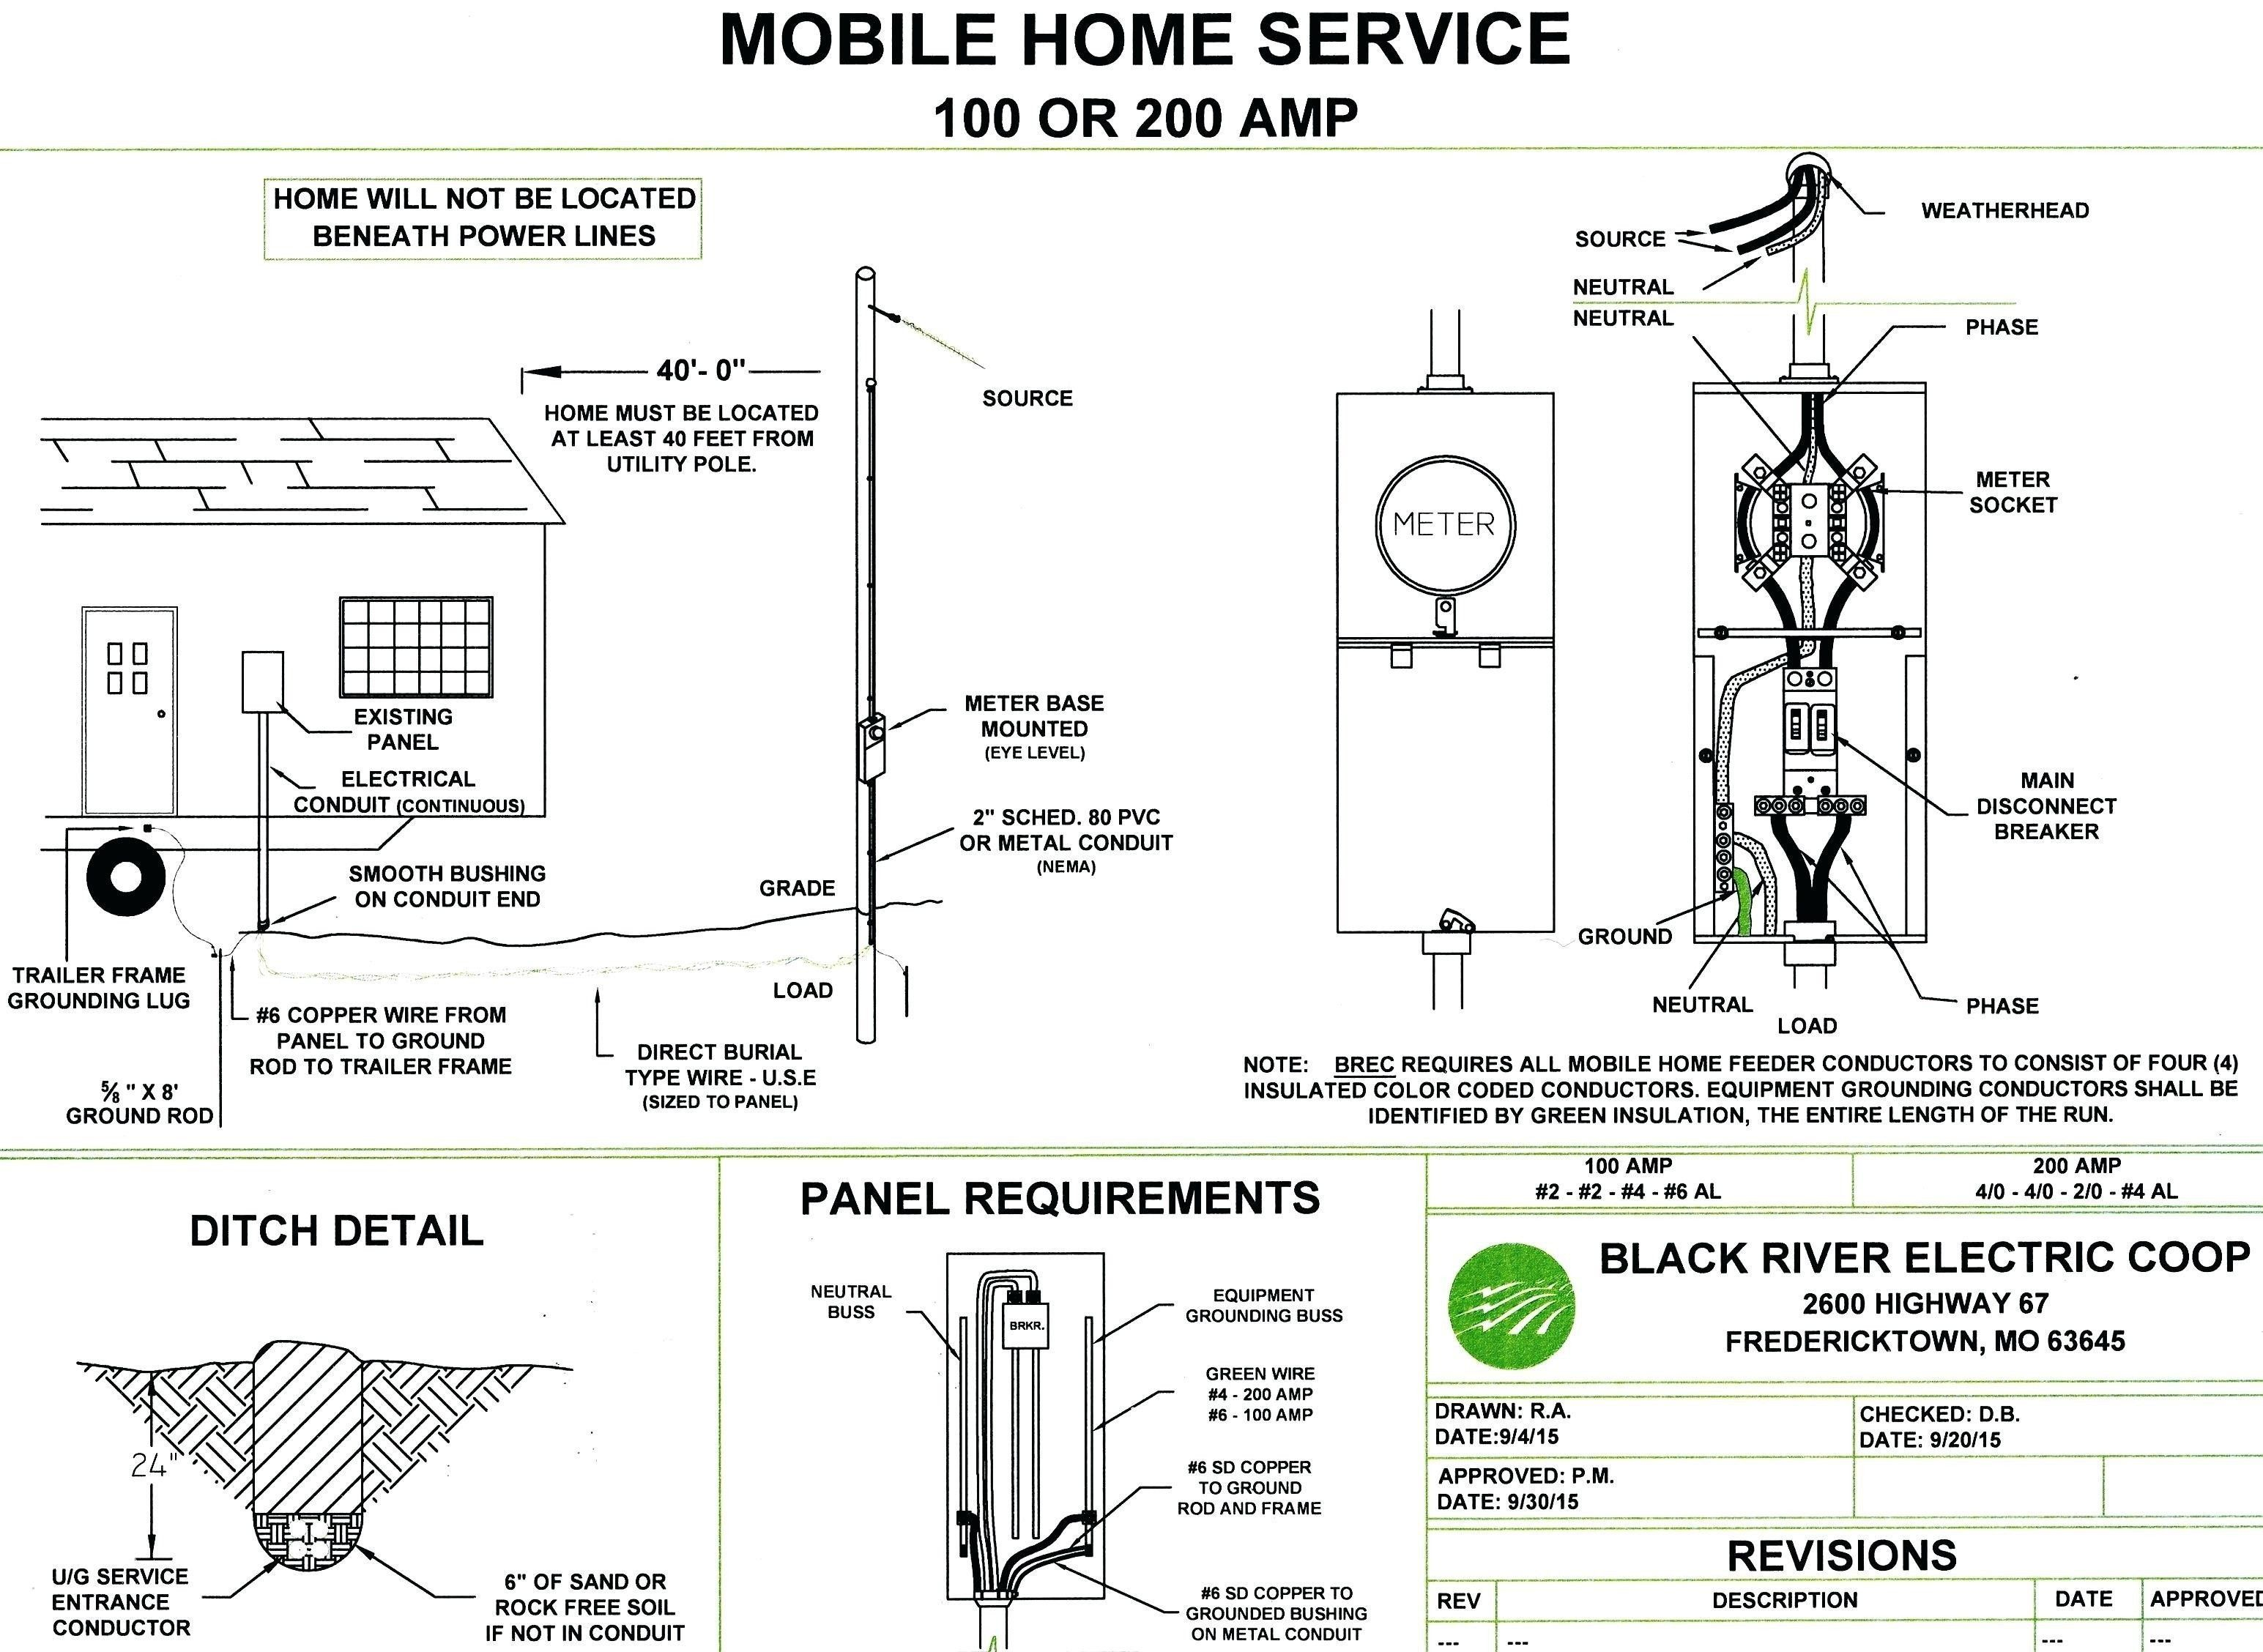 Lovely Electrical Wiring Diagram Sample Diagrams Digramssample Diagramimages Wiringdiagramsample Wiringdia House Wiring Home Electrical Wiring Mobile Home